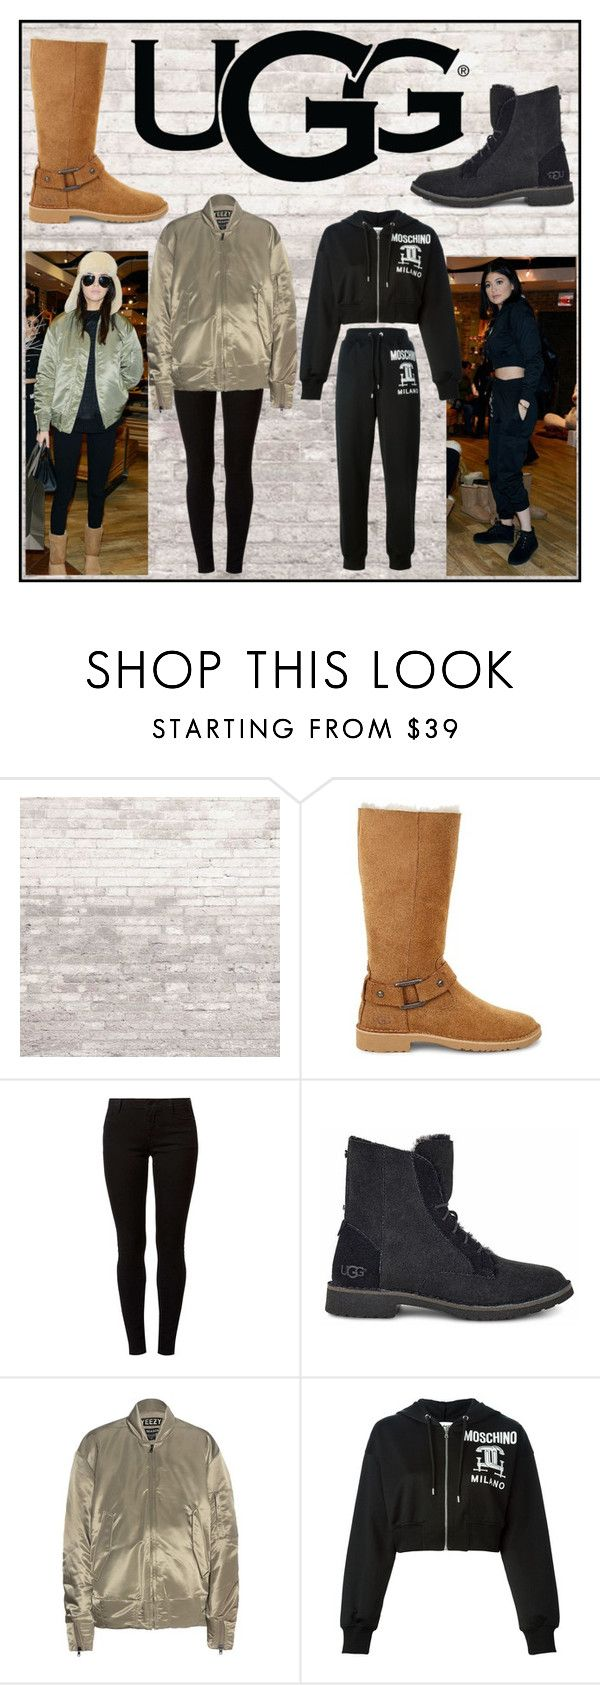 """The New Classics With UGG: Contest Entry"" by milenn-h ❤ liked on Polyvore featuring UGG Australia, UGG, Dorothy Perkins, adidas Originals, Moschino and ugg"